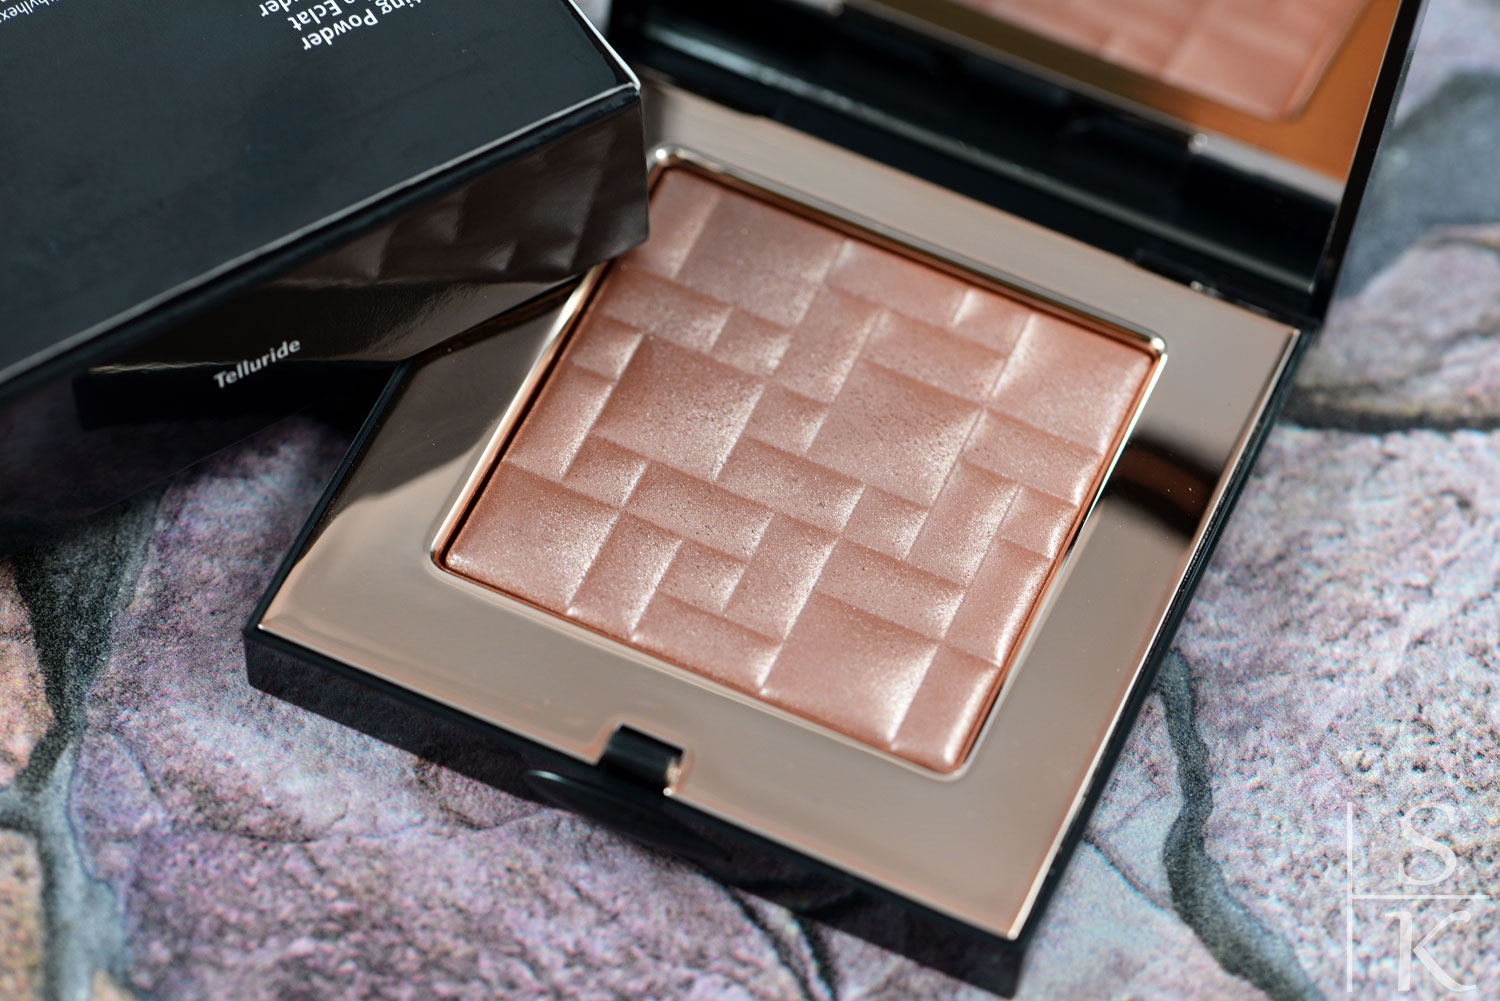 Bobbi Brown - Highlighting Powder Telluride Sunset Pink Collection